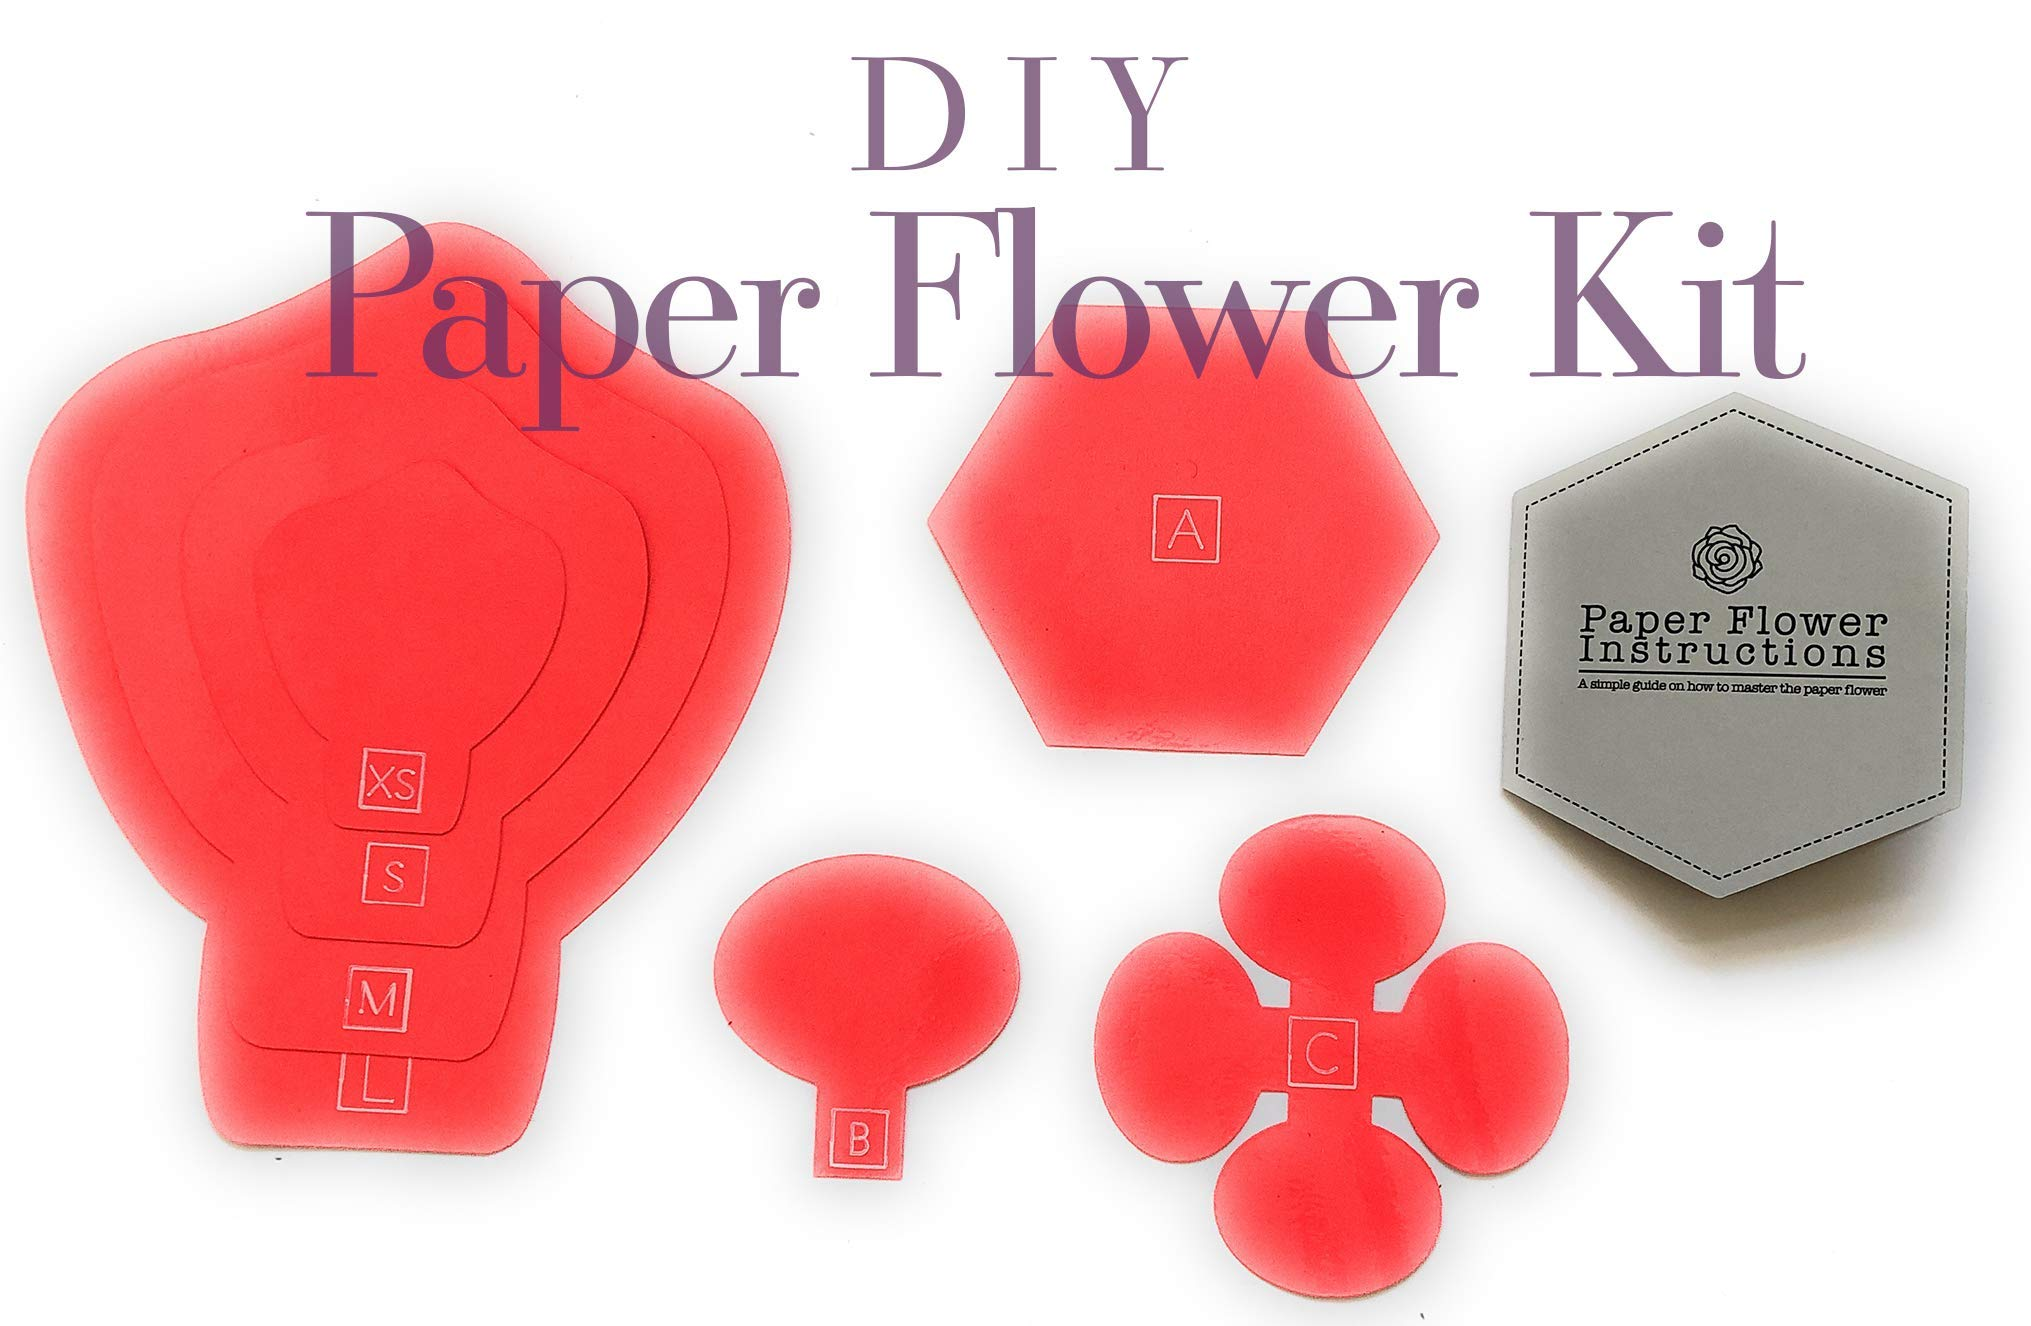 Paper Flower Template Kit - DIY Wall Decorations - Instructions Included - 8 Piece Set